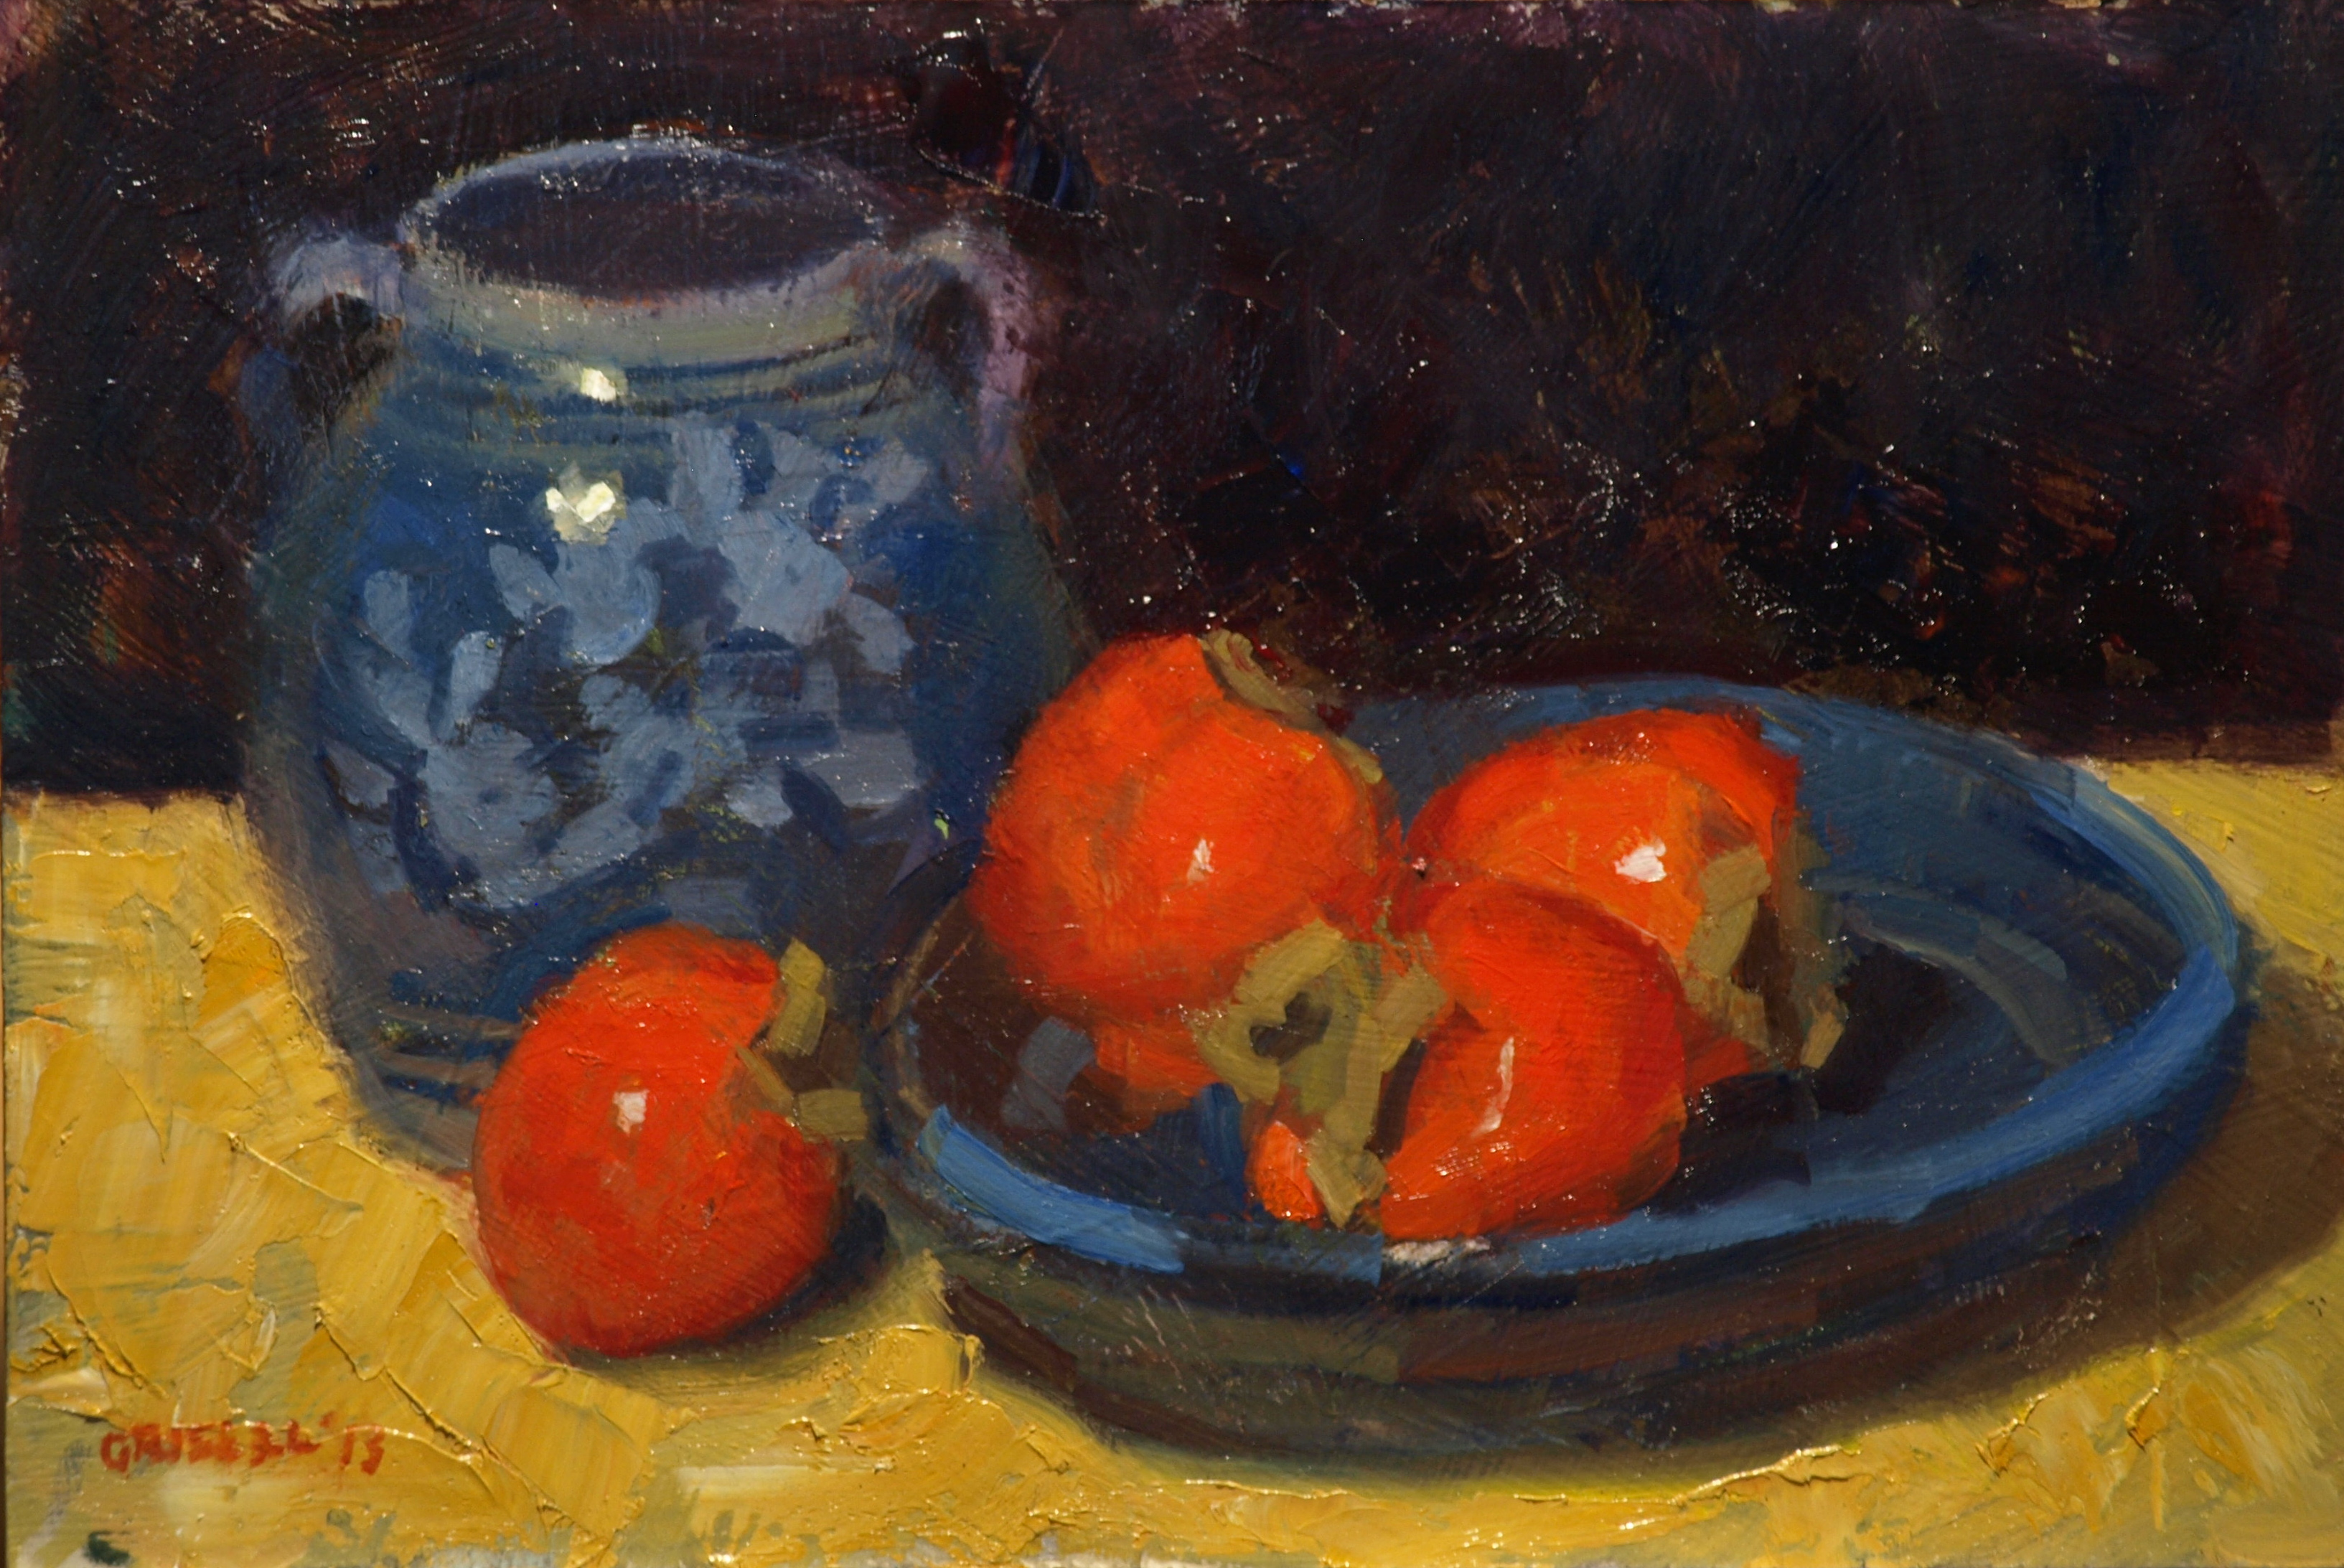 Orange and Blue, Oil on Canvas on Panel, 12 x 18 Inches, by Susan Grisell, $275